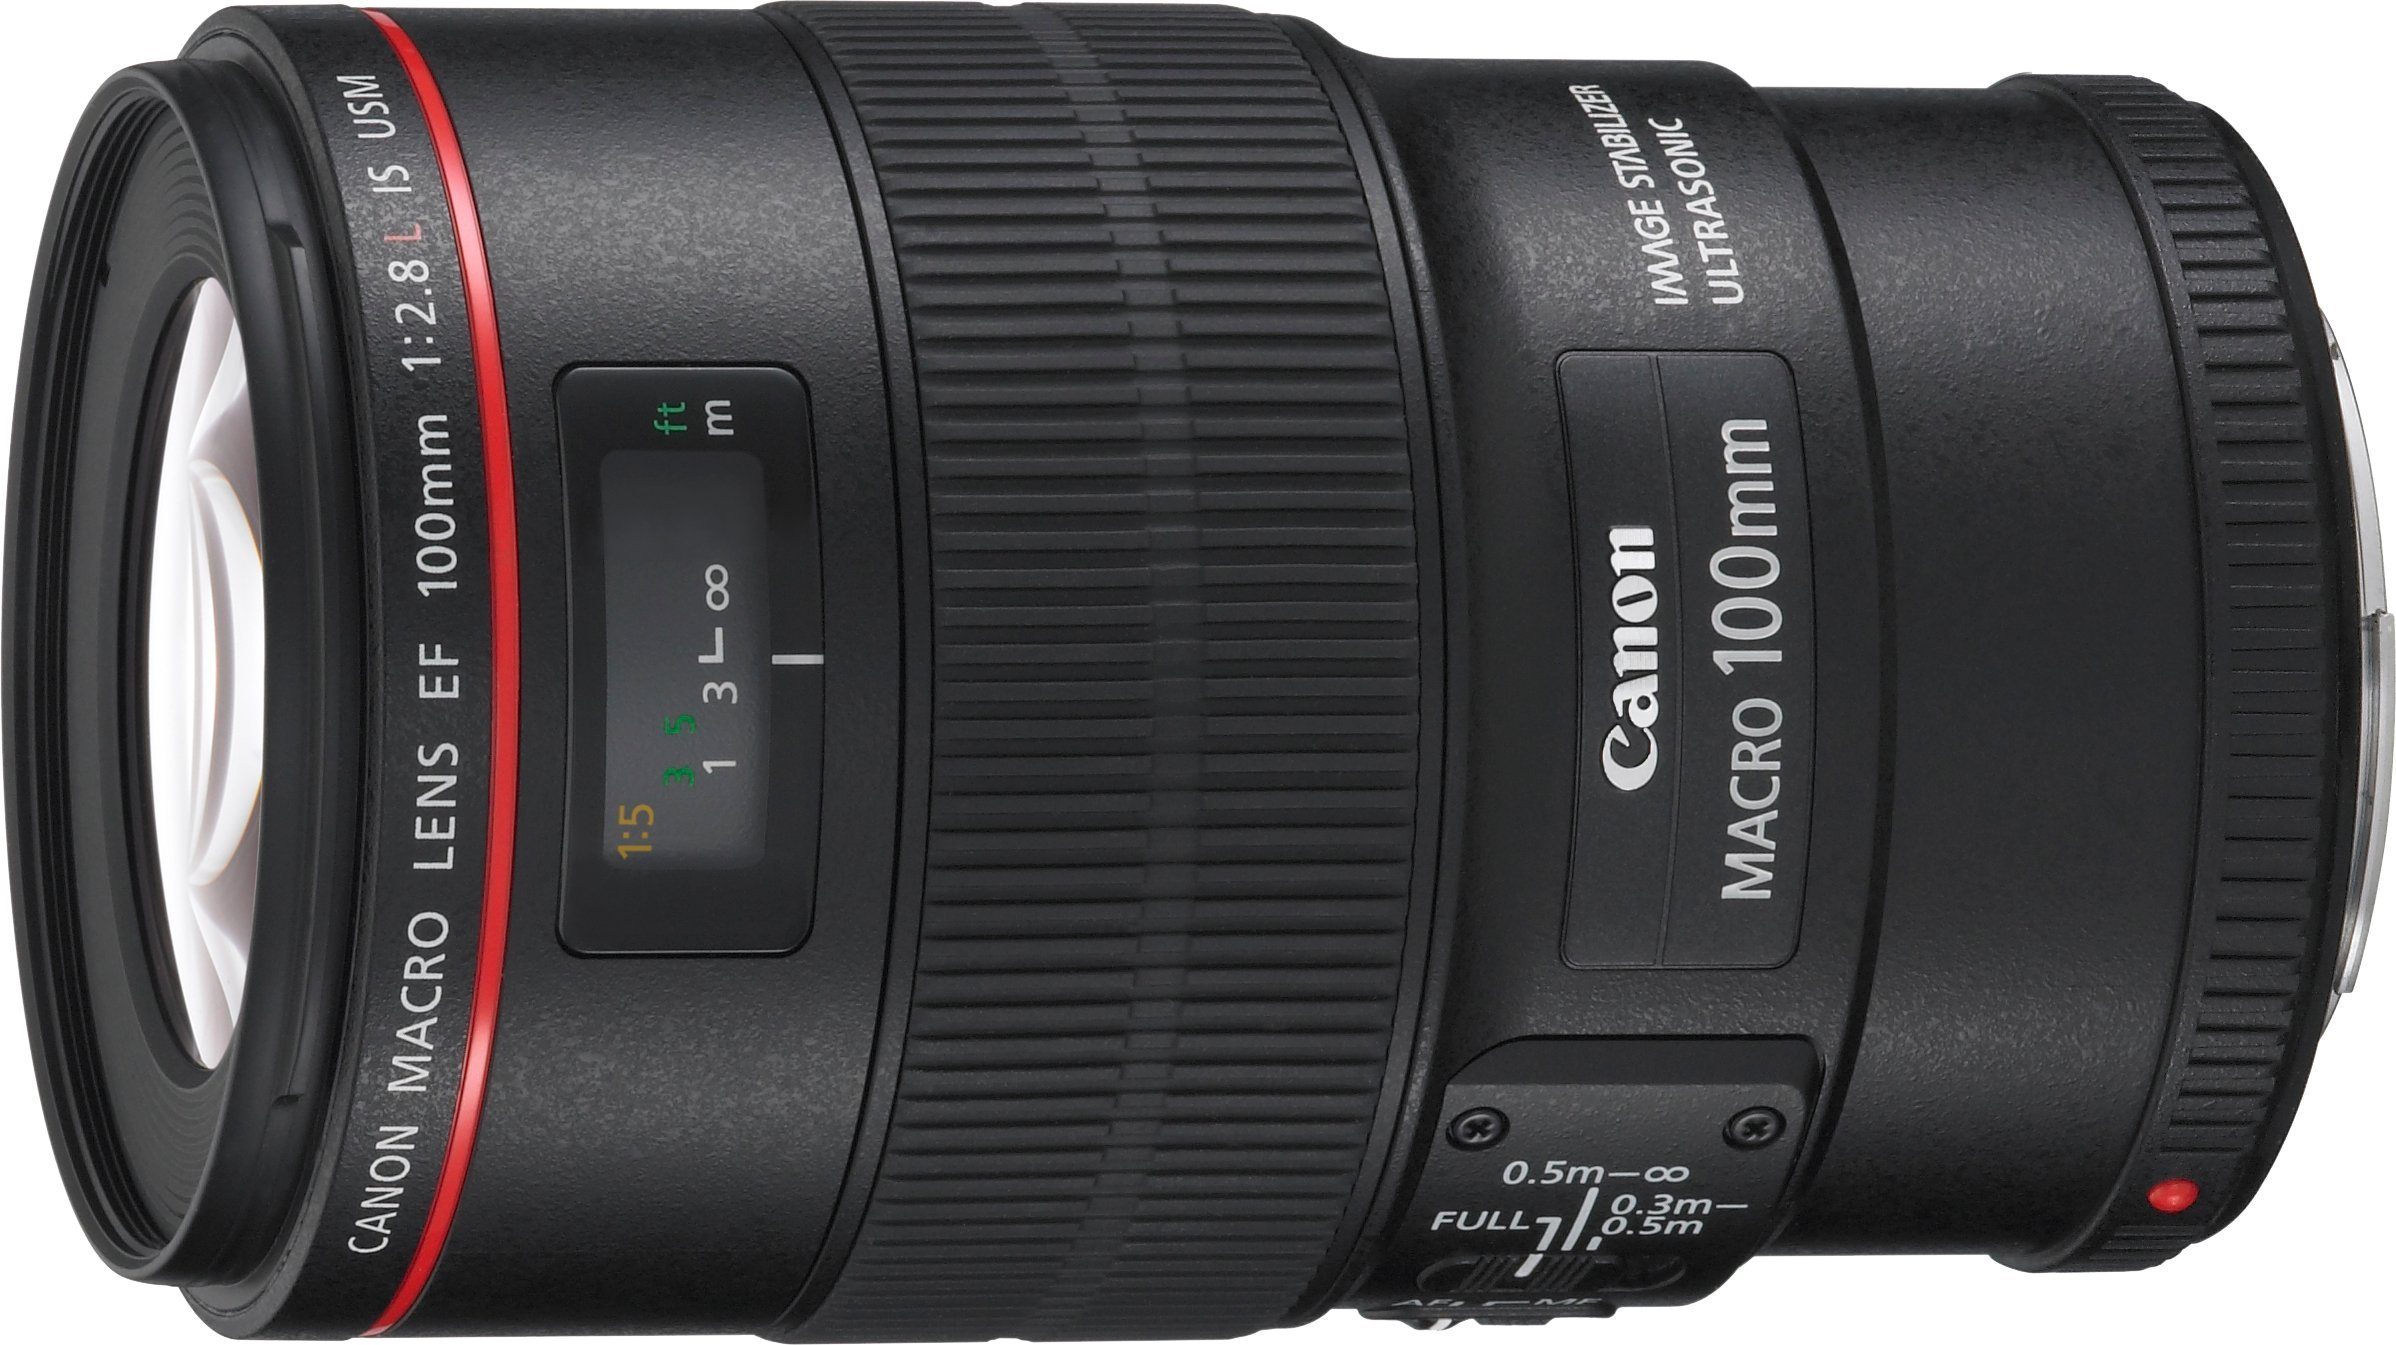 Canon EF 100mm f/2.8L IS USM Macro Lens for Canon Digital SLR Cameras - International Version (No Warranty) by Canon